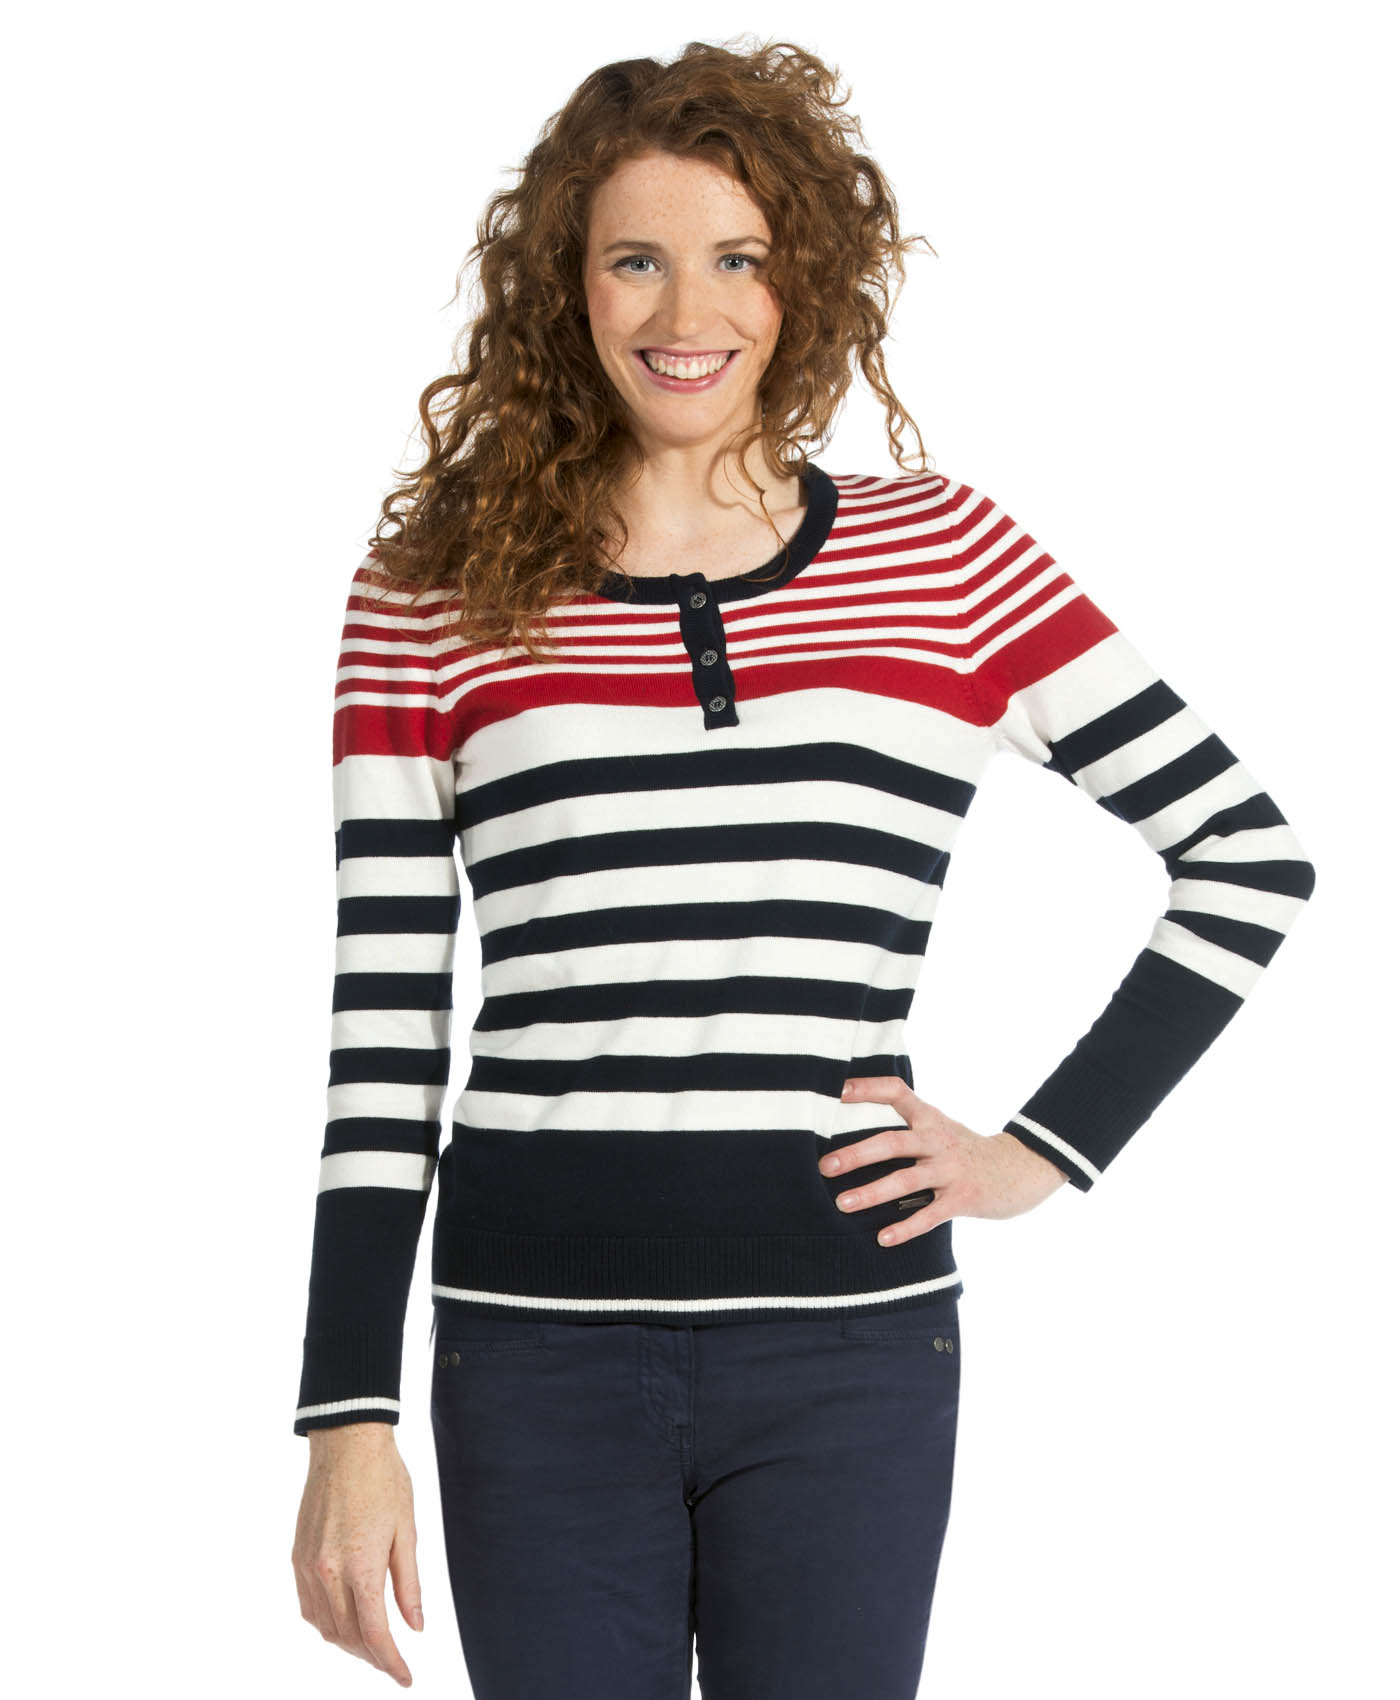 Bien connu Pull femme rayé - Pull, Cardigan Mode Femme Terre de Marins ZH44